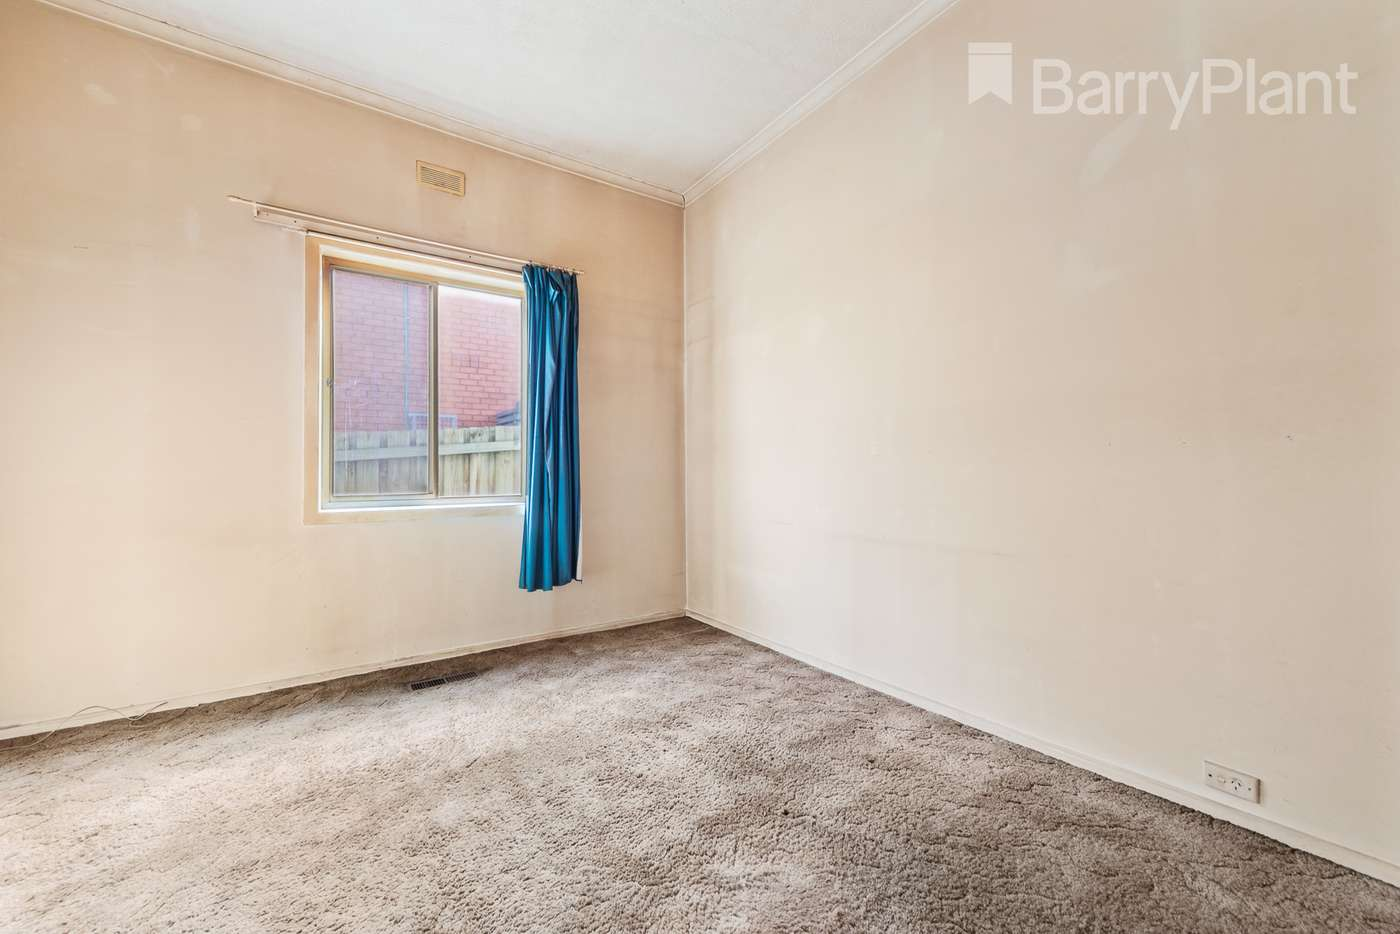 Fifth view of Homely house listing, 56 Shamrock. Street, Brunswick West VIC 3055